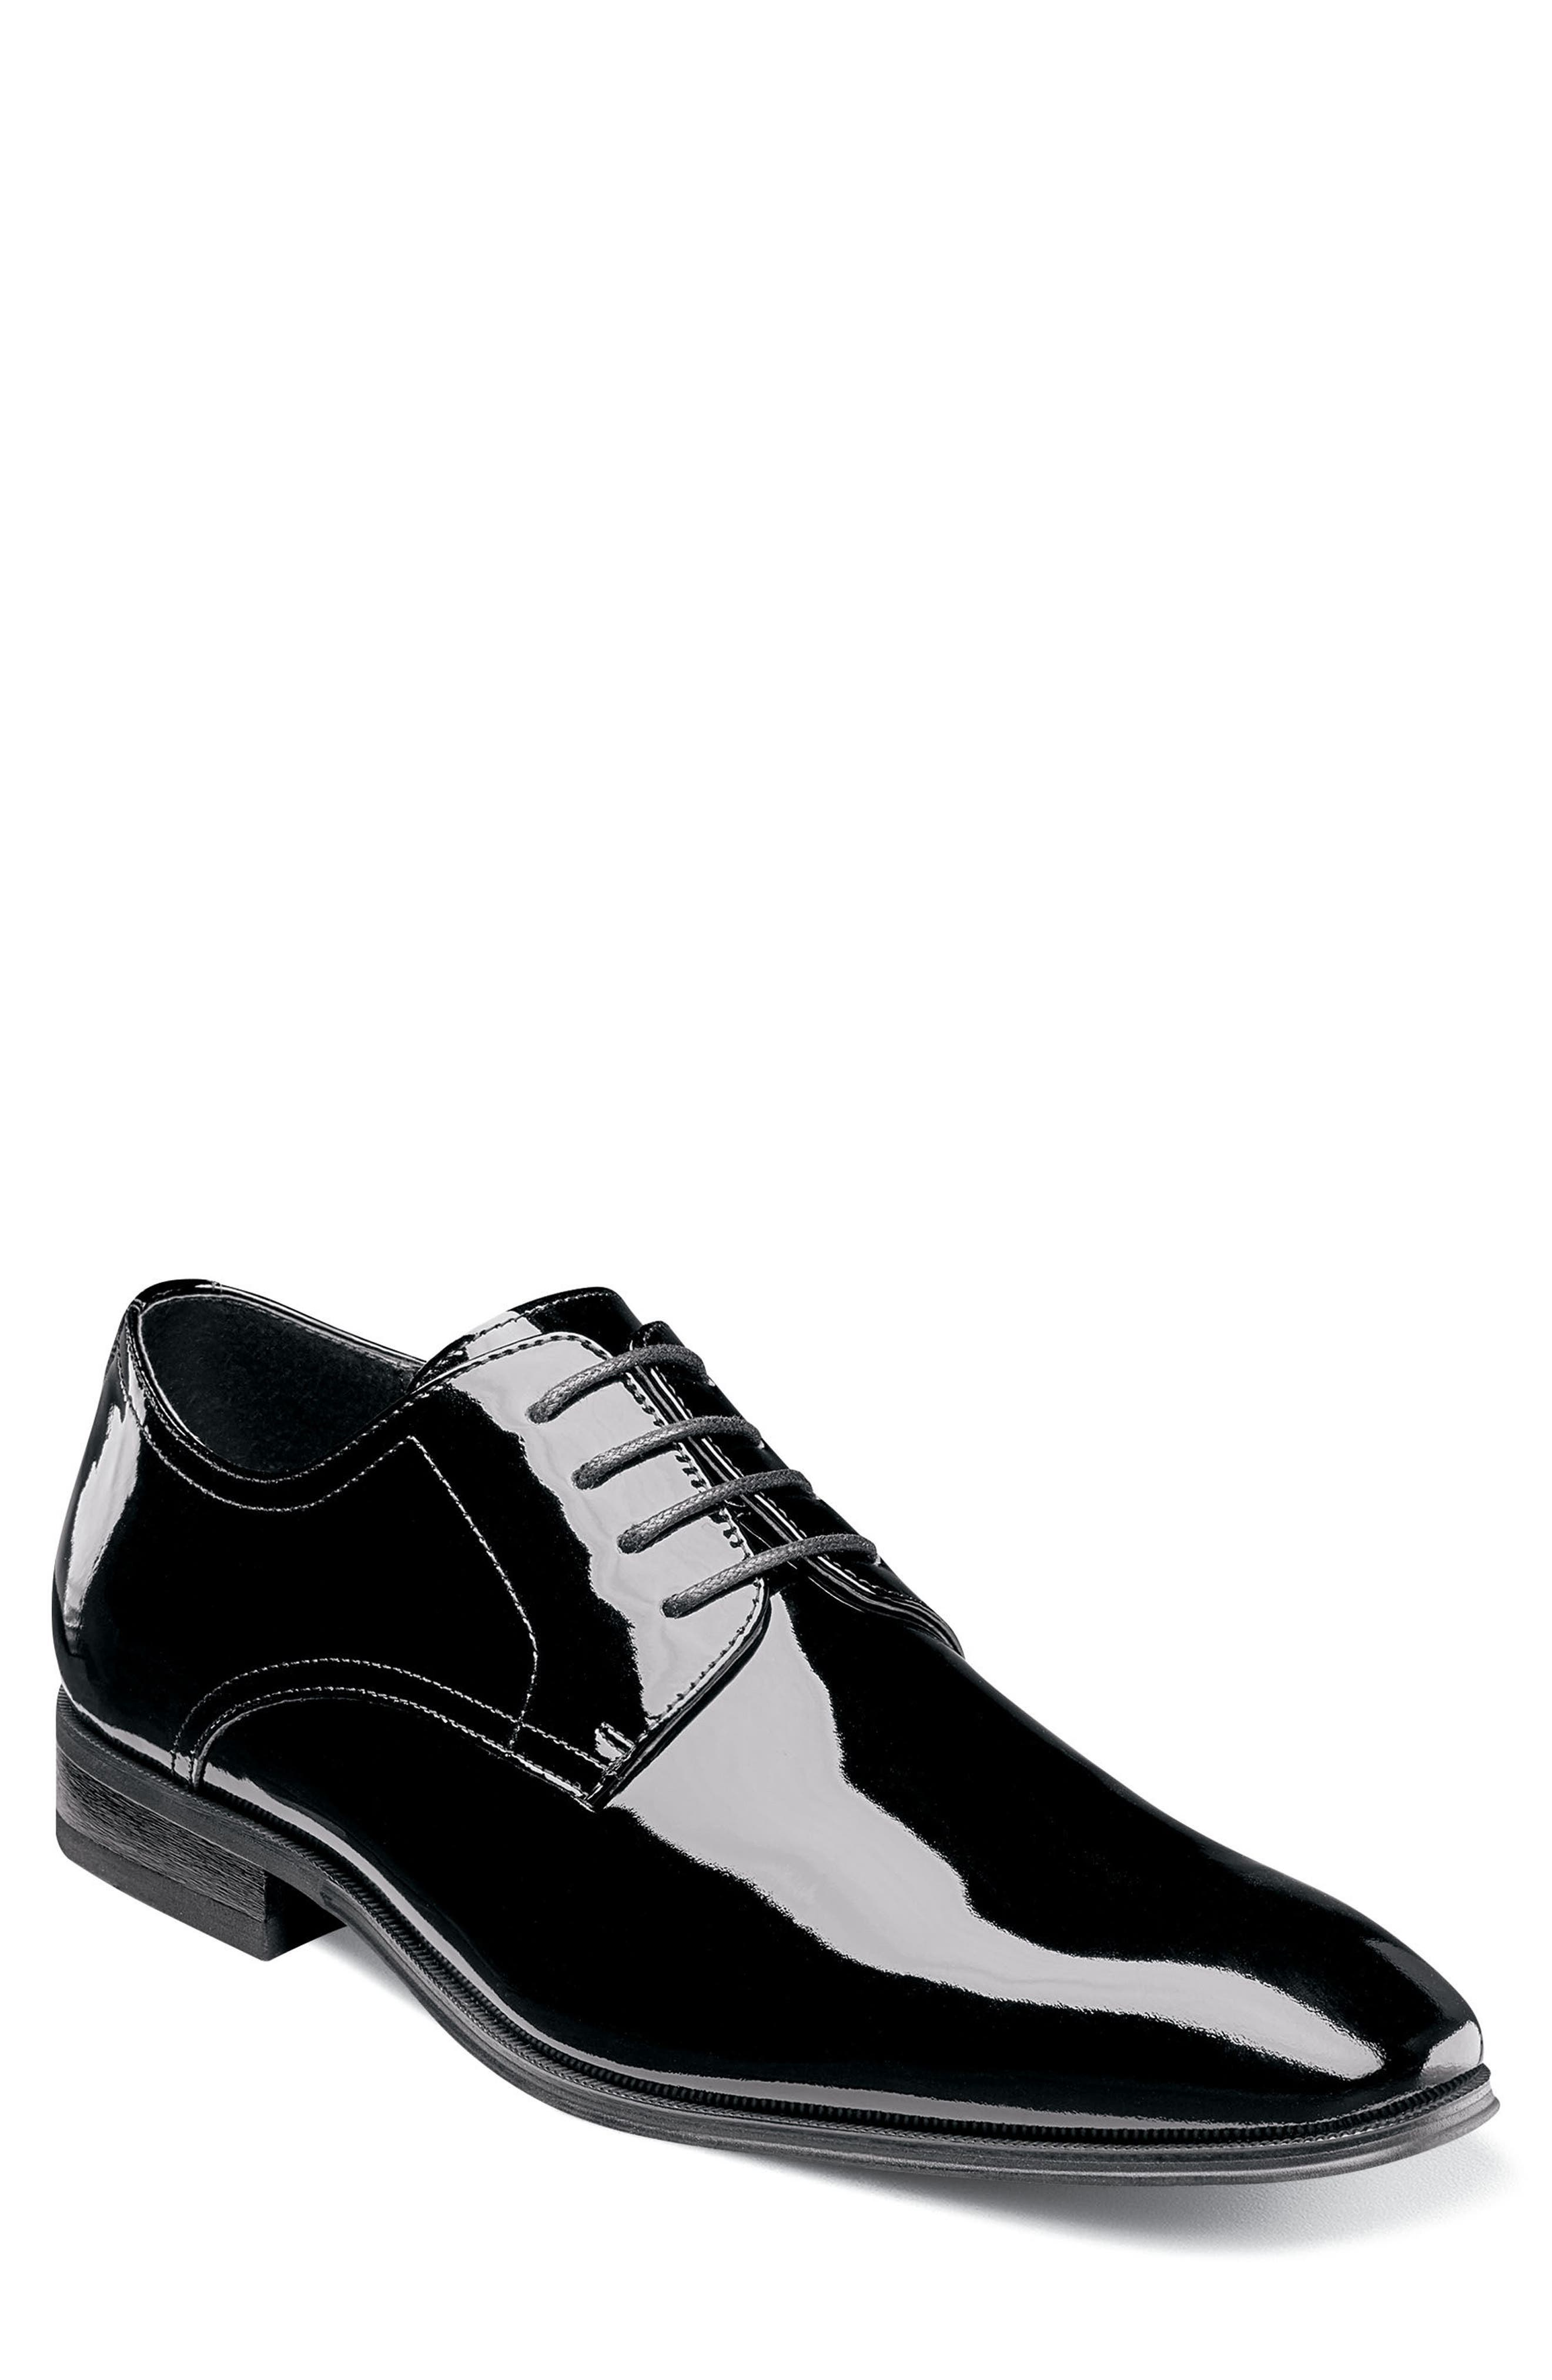 Florsheim Tux Plain Toe Derby (Men)